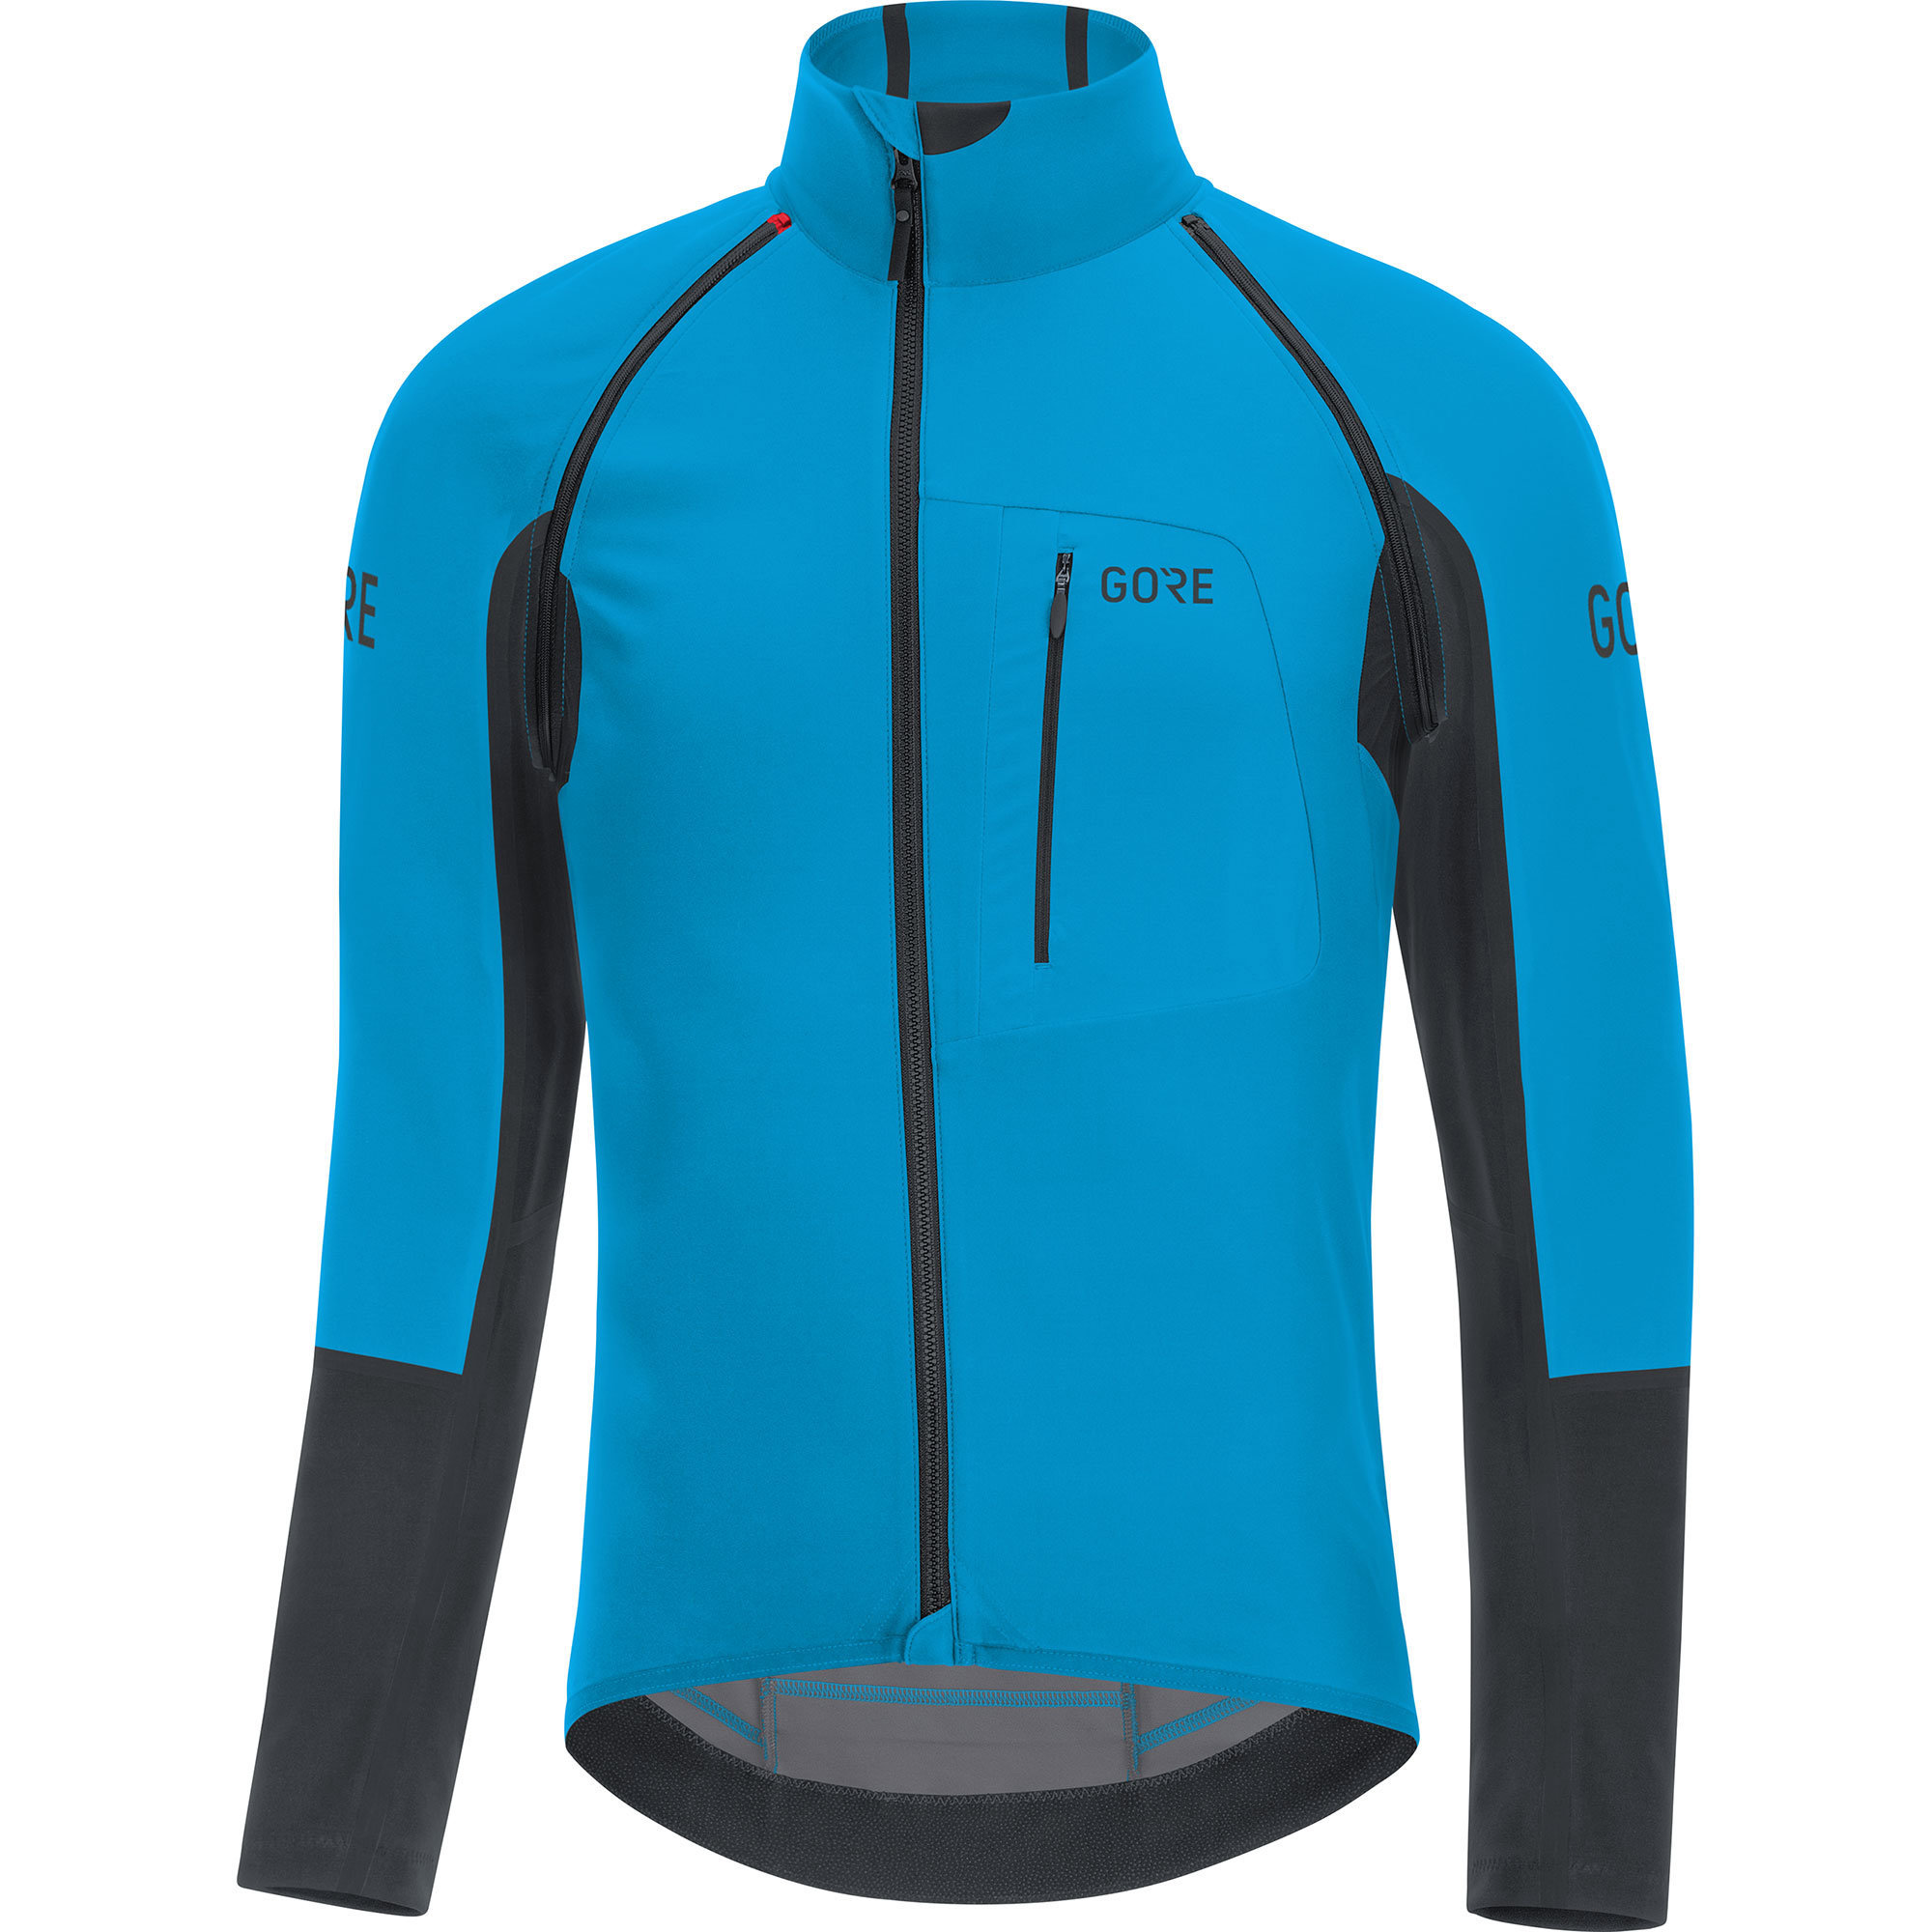 a55d1f6ad2a Gore Wear C7 GORE WINDSTOPPER Pro Zip-Off Jersey - Northern Virginia Bike  Shop | Washington DC | Spokes Etc.